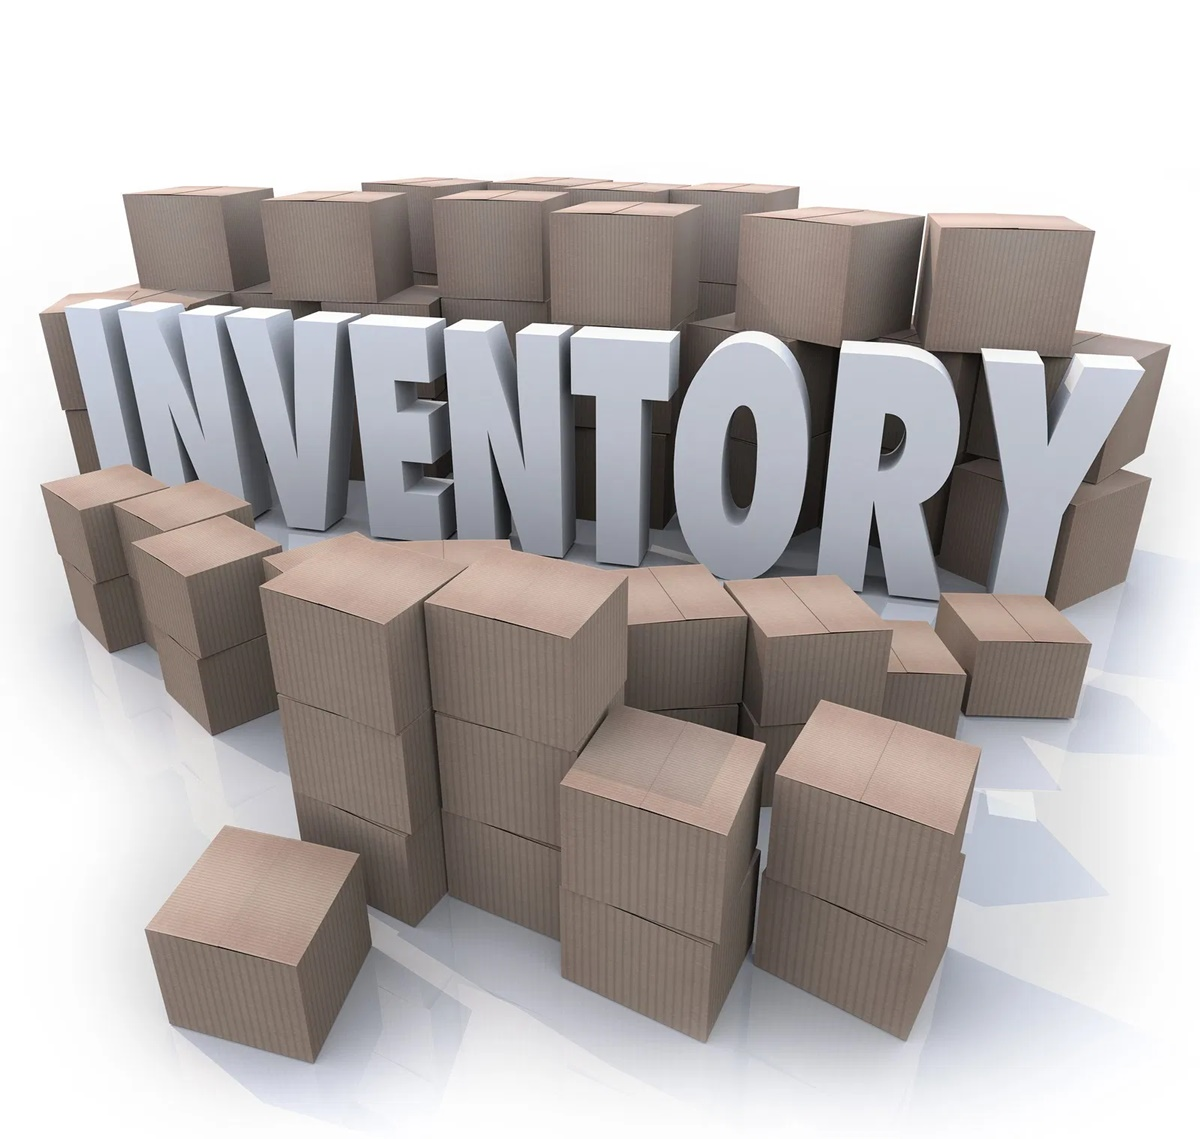 Develop a system for integrating product inventory